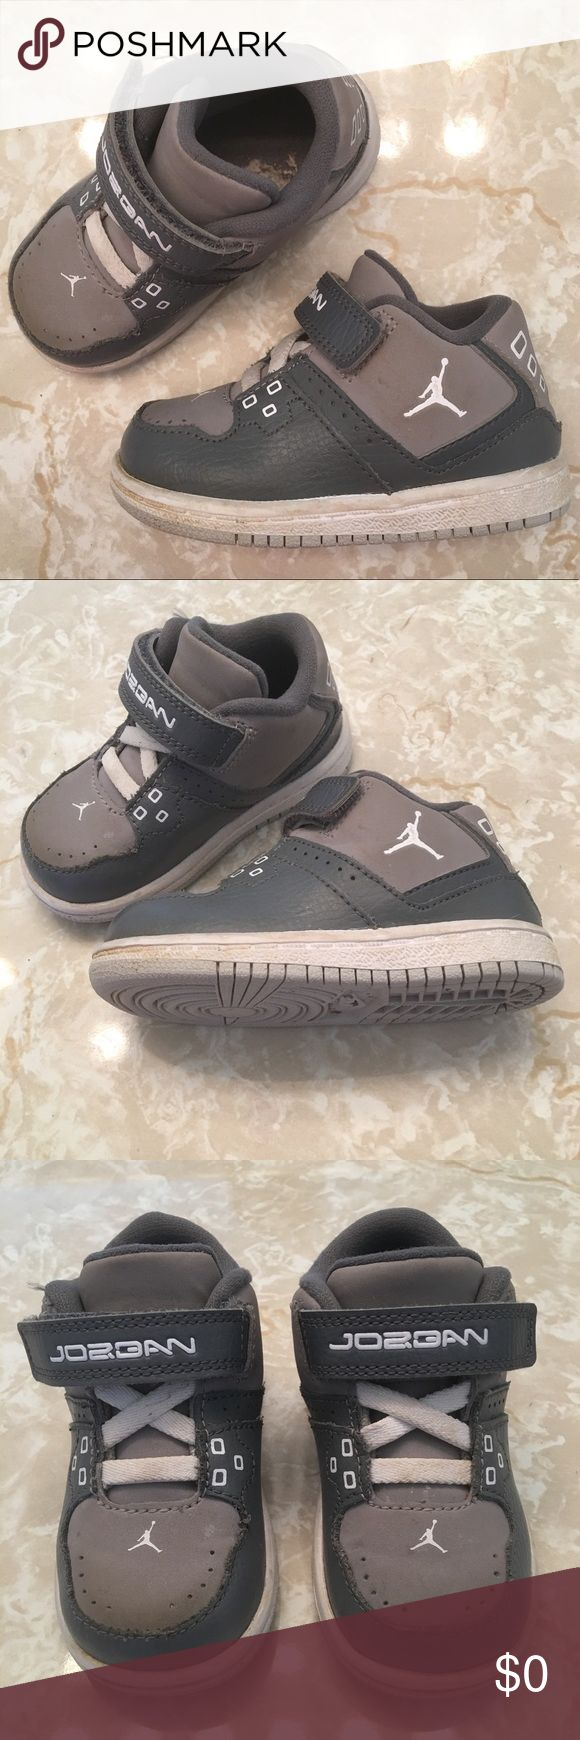 👟NIKE JORDAN FLIGHT SNEAKERS NIKE JORDAN 1 FLIGHT LOW GRAY Nike Shoes Sneakers